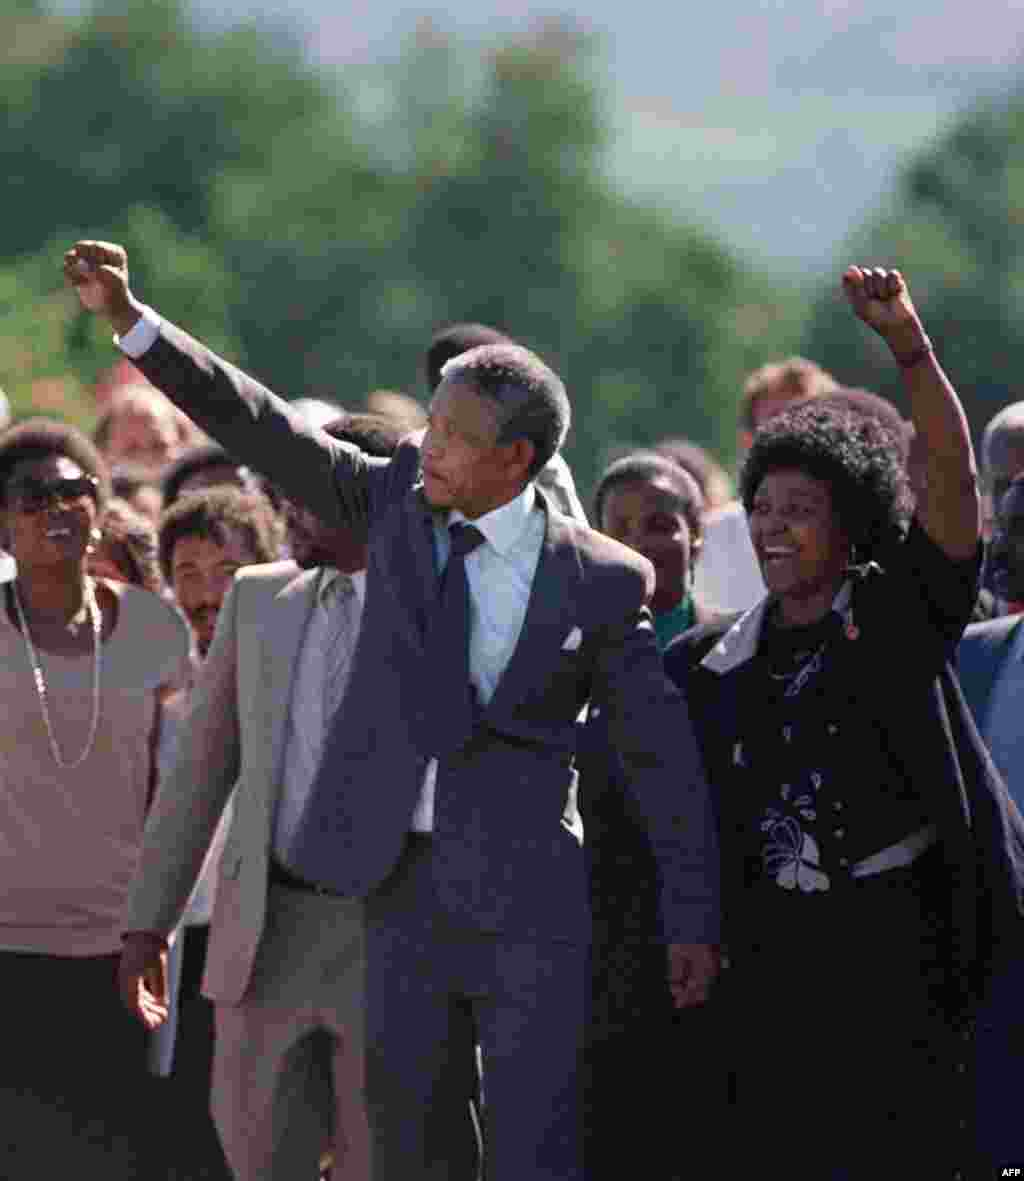 Nelson and Winnie Mandela raise their fists and salute a cheering crowd upon Nelson's release from prison after 27 years.